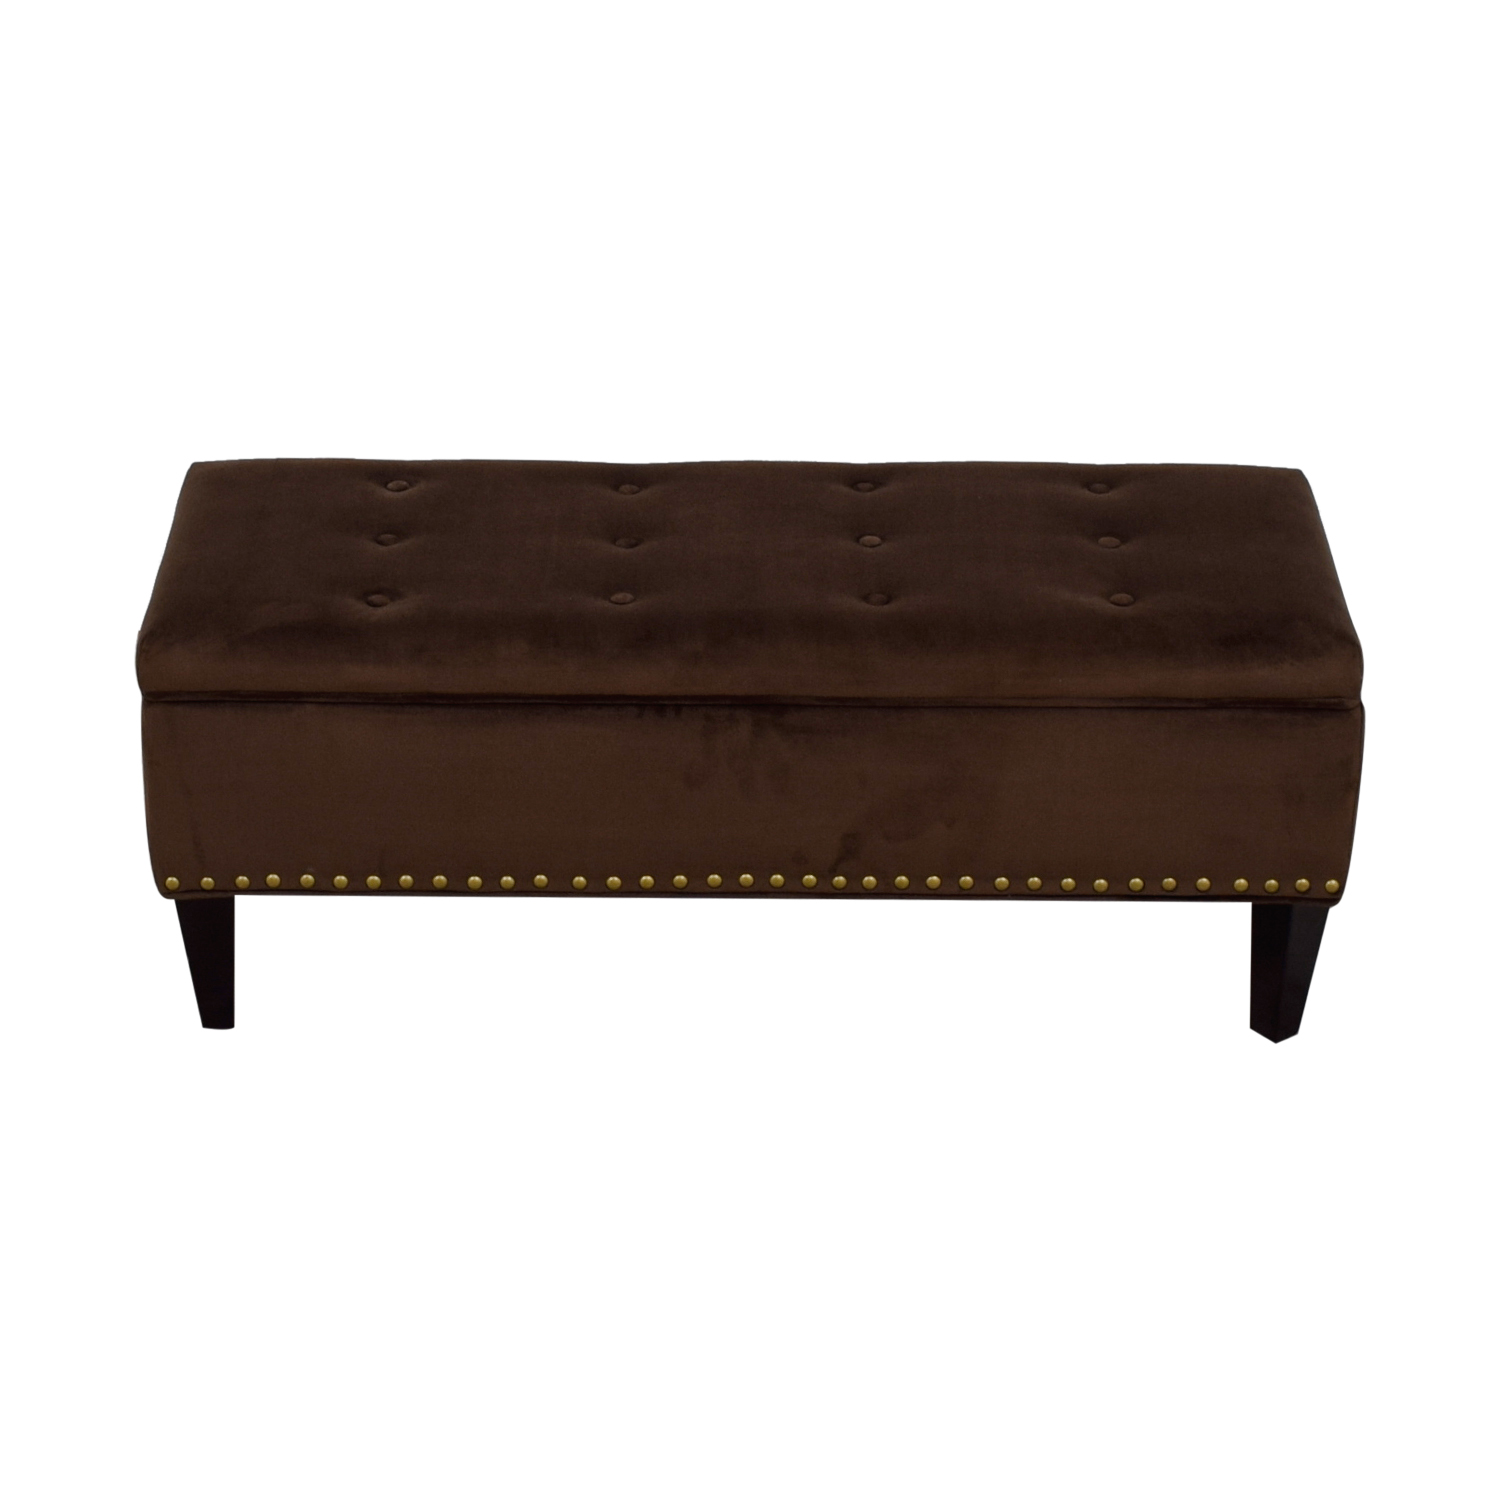 Brown Tufted Nailhead Storage Ottoman dimensions